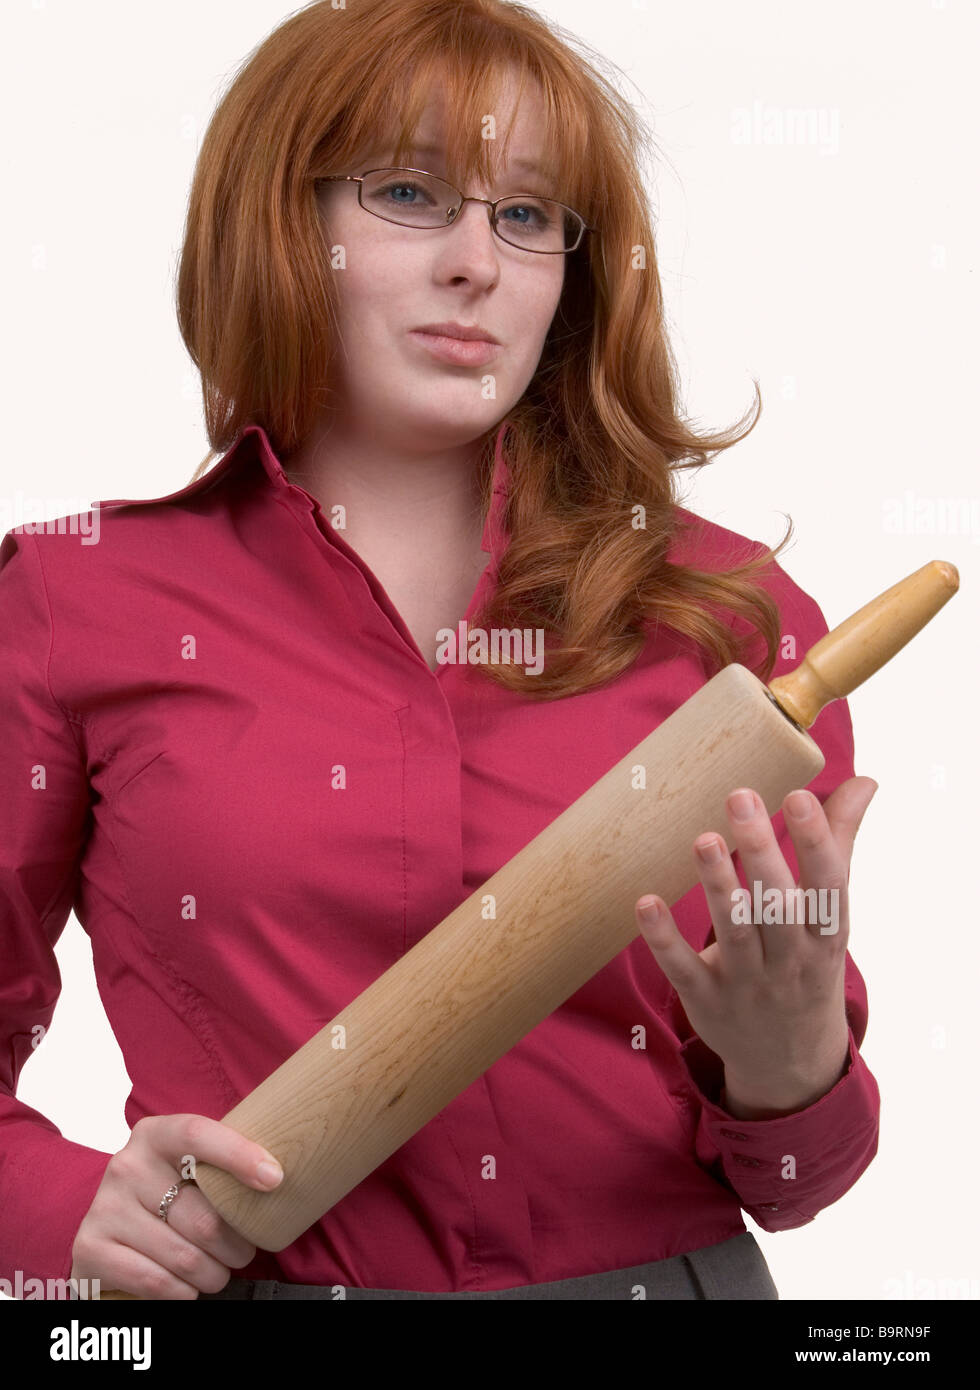 An angry redheaded woman with a wooden rolling pin holing it in a menacing way - Stock Image